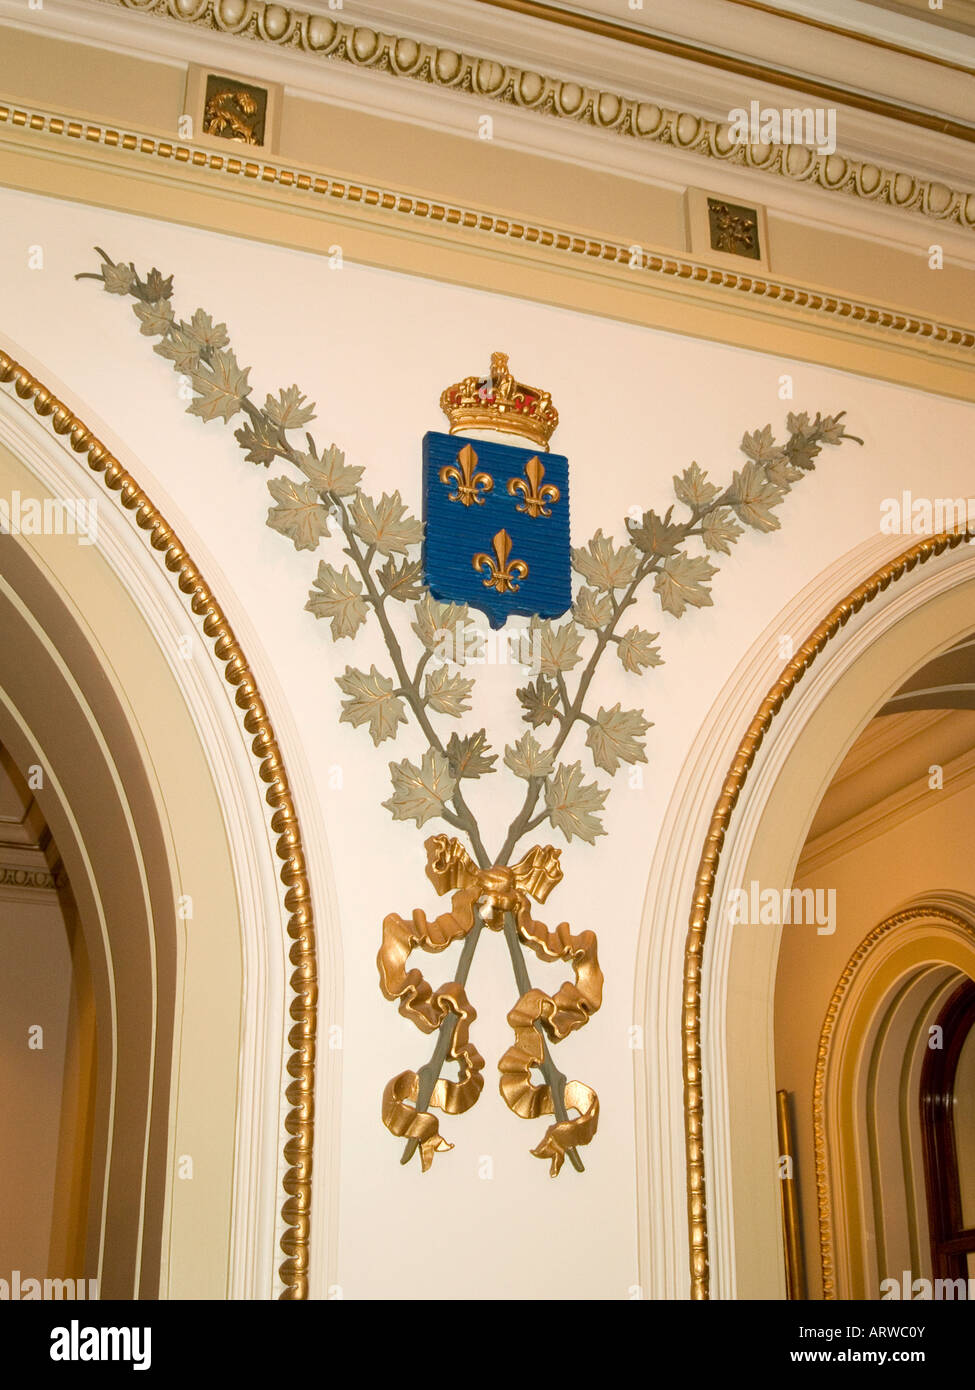 The French Coat Of Arms On The Wall Inside The Assemblee Nationale On  Grande Allee, Quebec City Canada